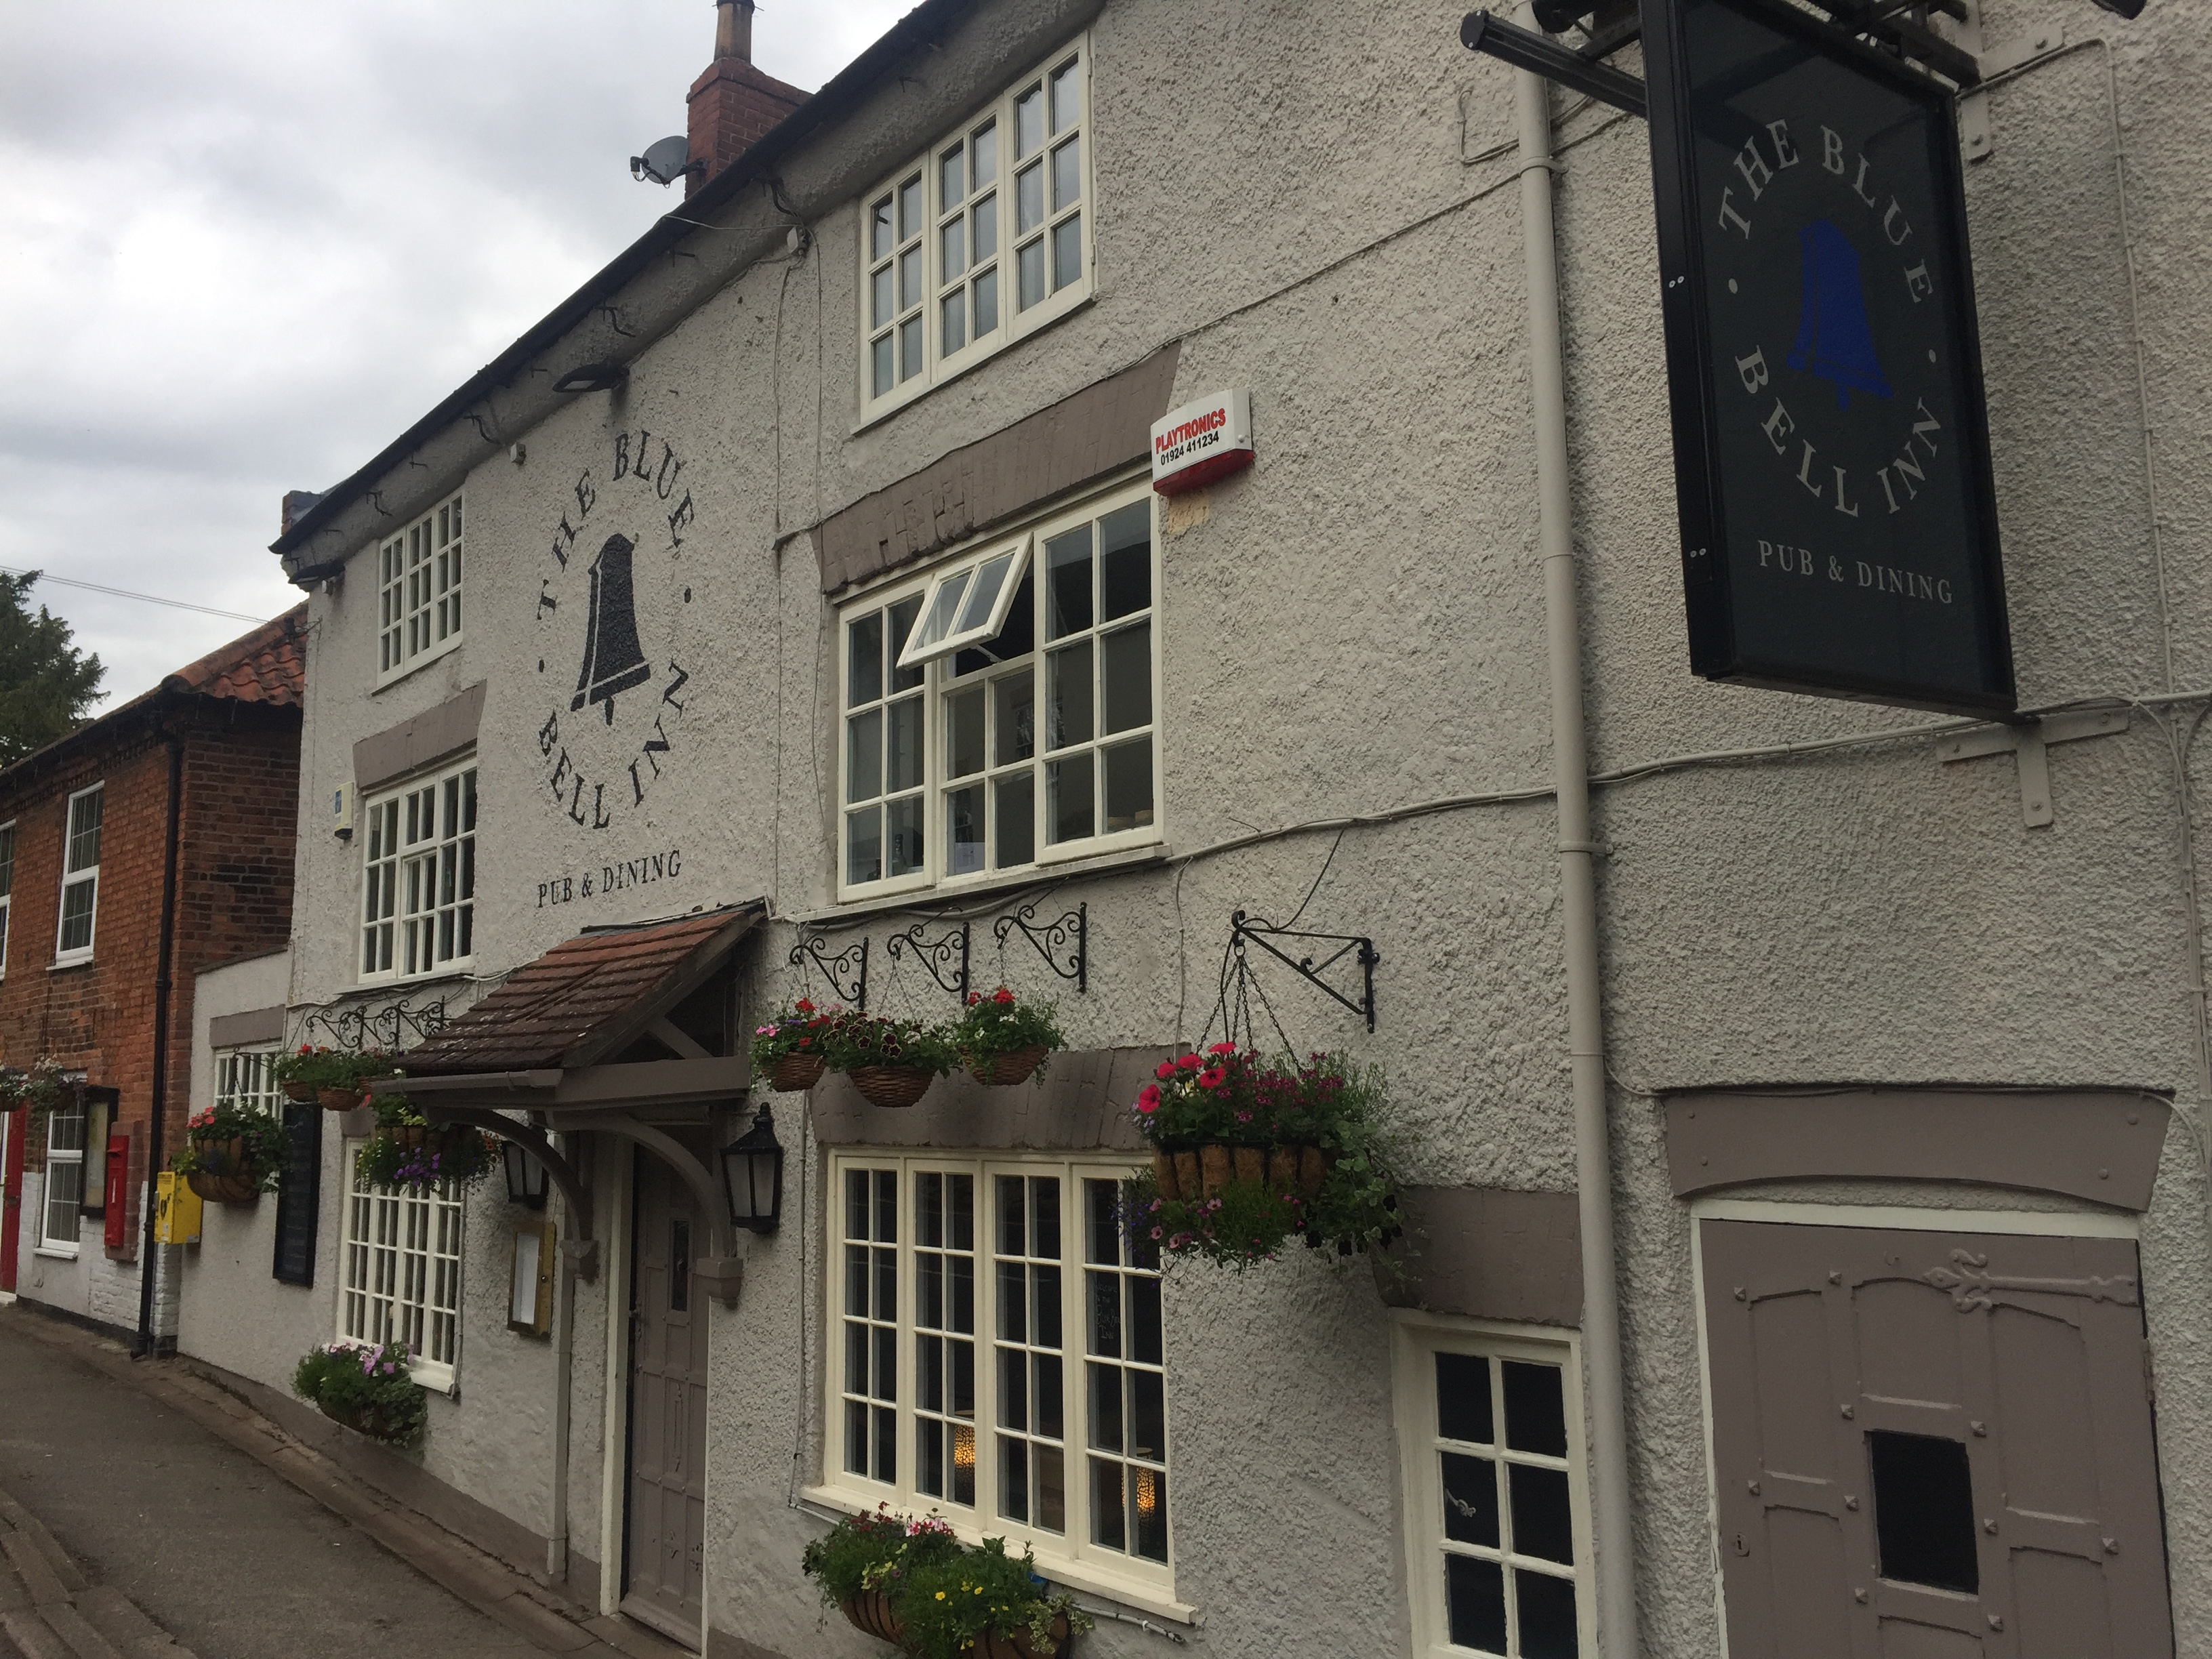 The Blue Bell Inn exterior